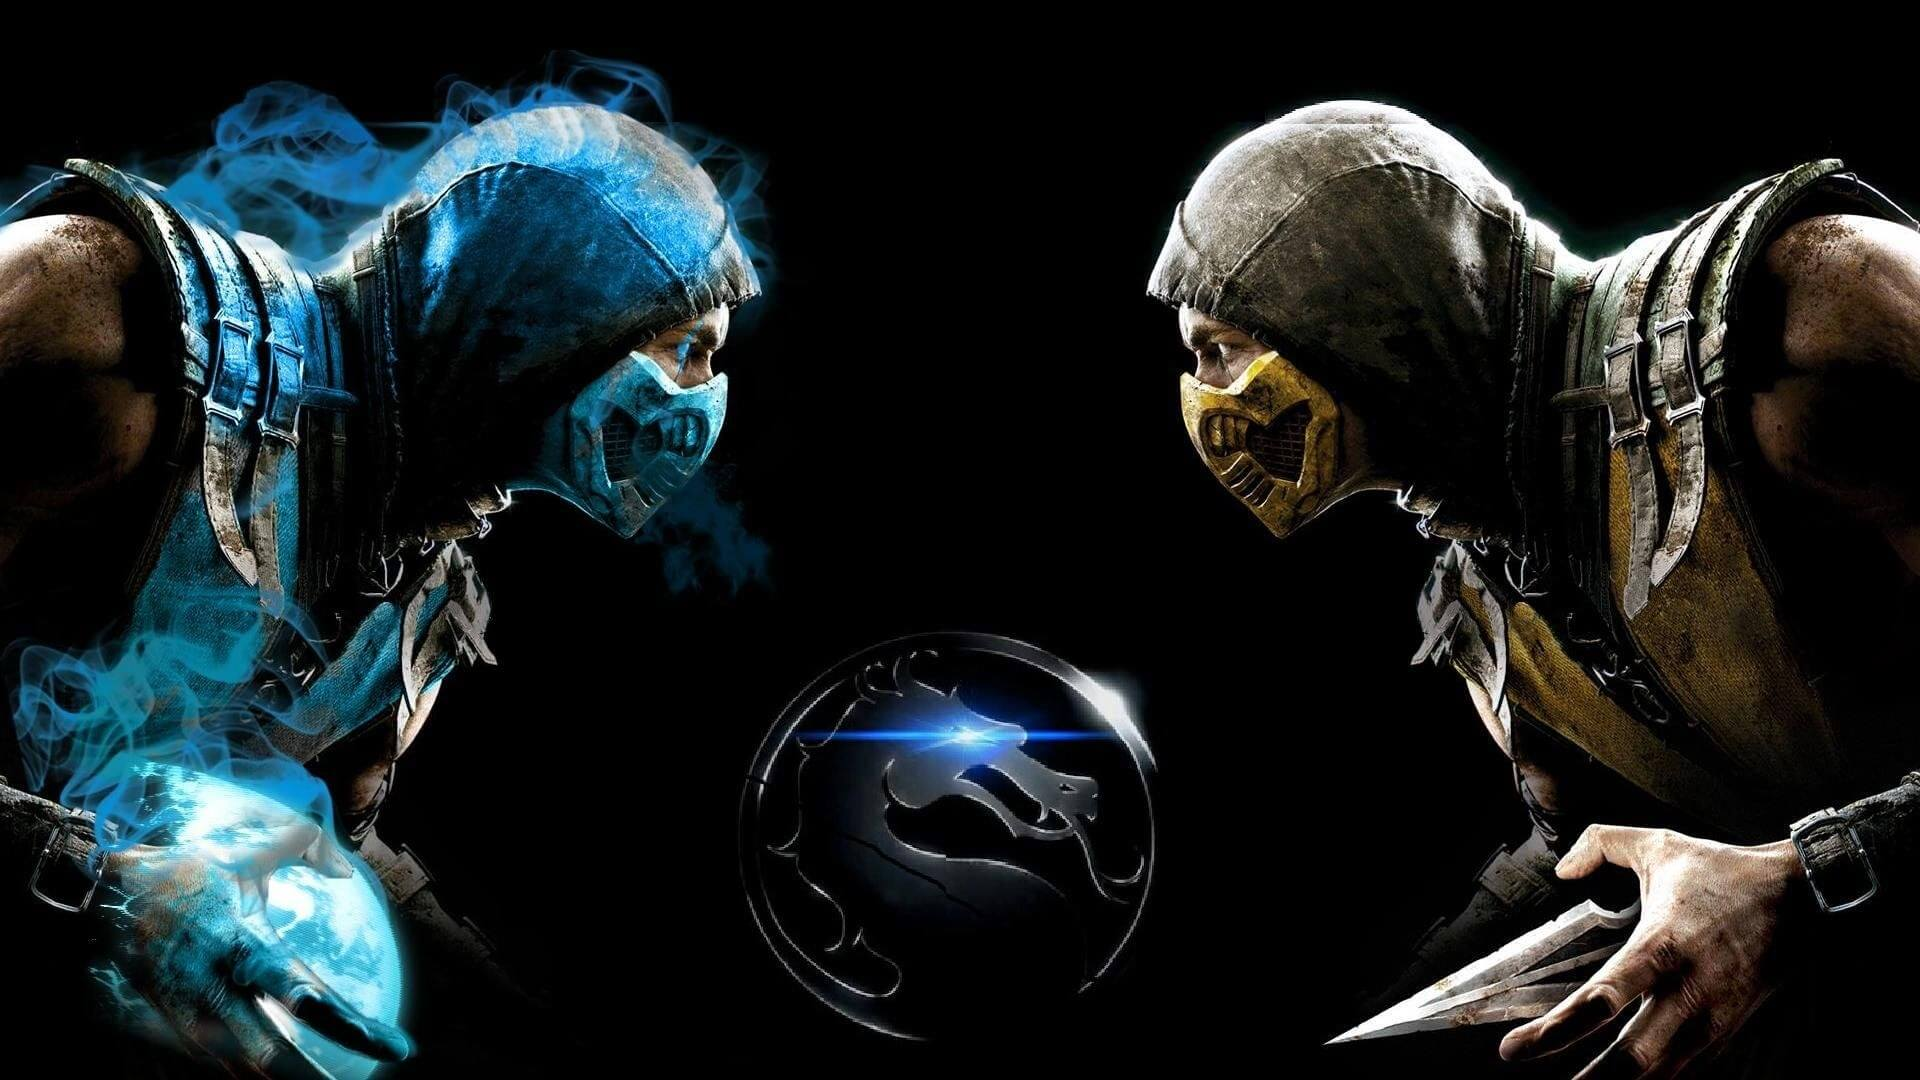 Spanish-localization crew appears to be casting for new Mortal Kombat game